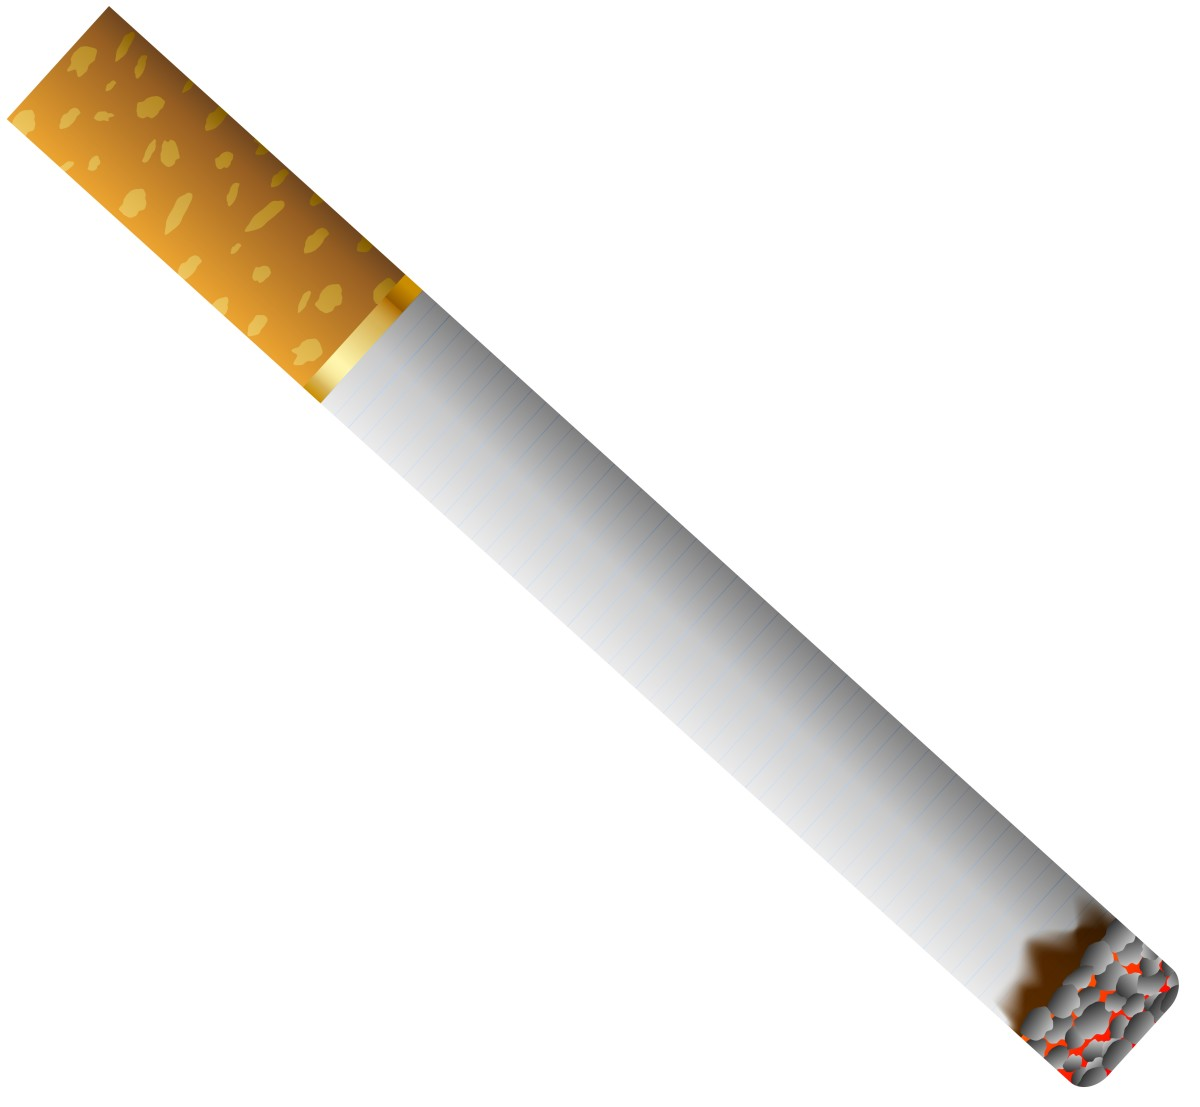 Quitting Smoking: My Story